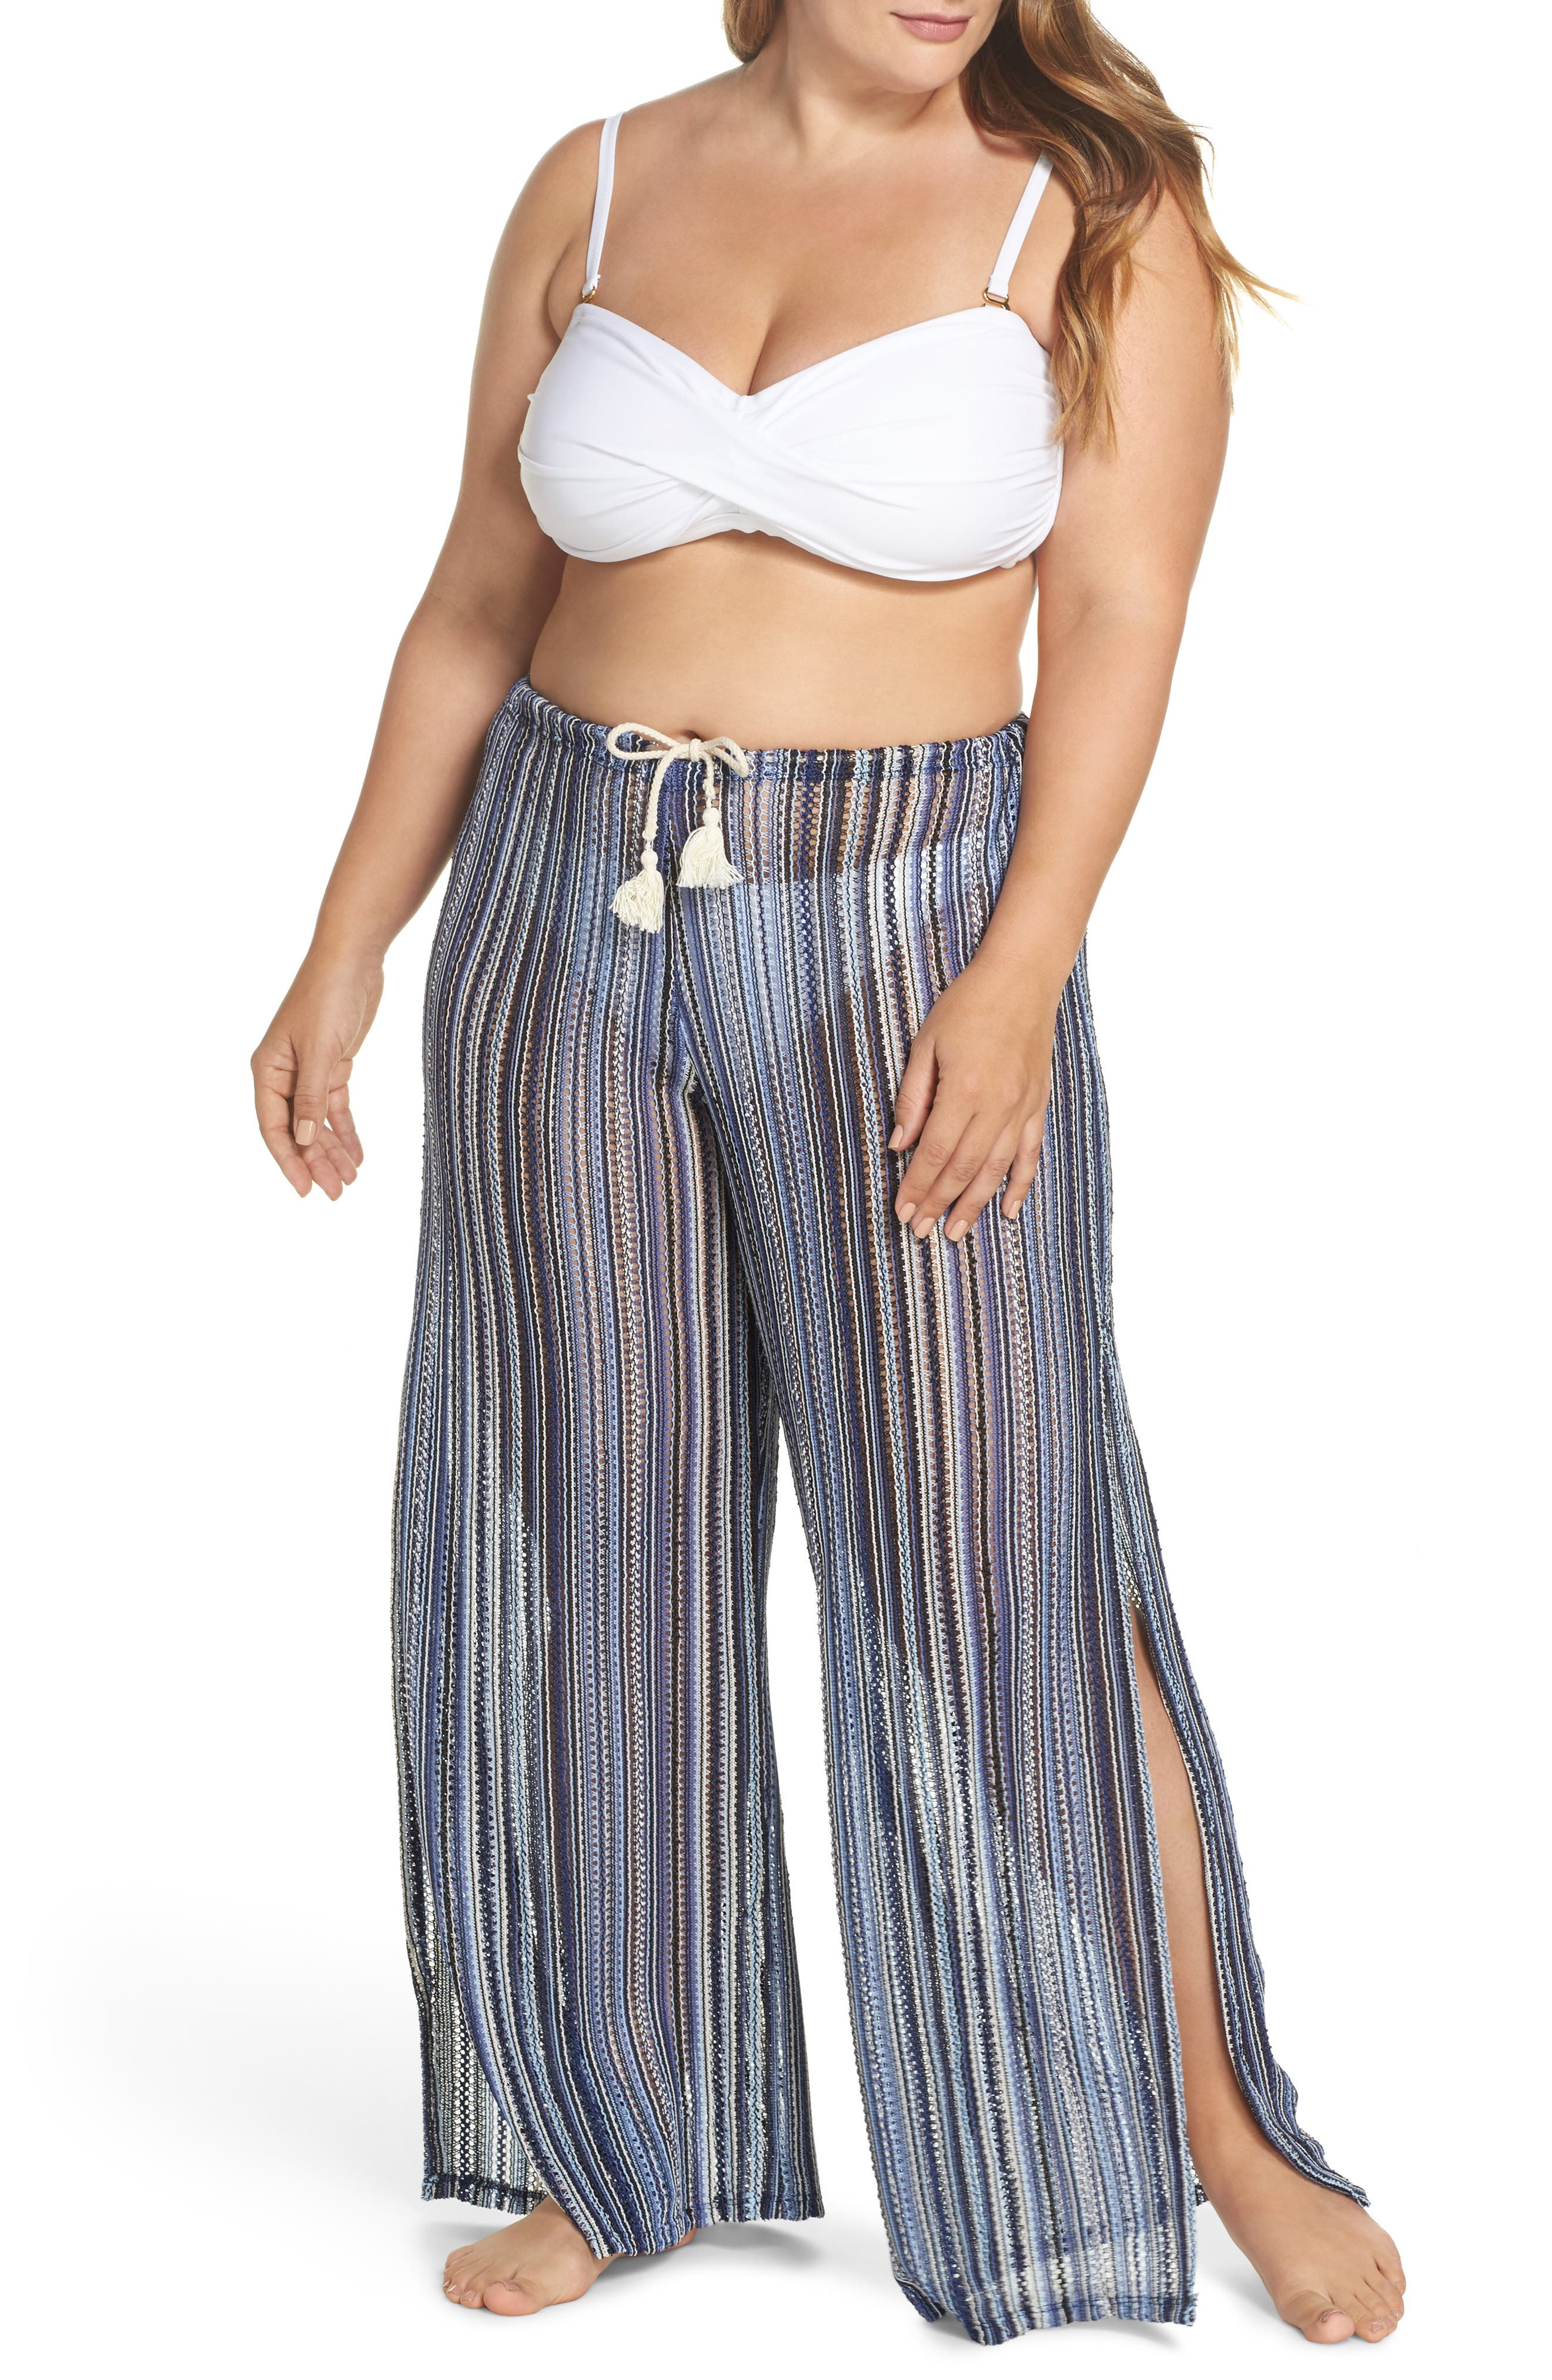 Pierside Cover-Up Flyaway Pants,                             Main thumbnail 1, color,                             Black Multi